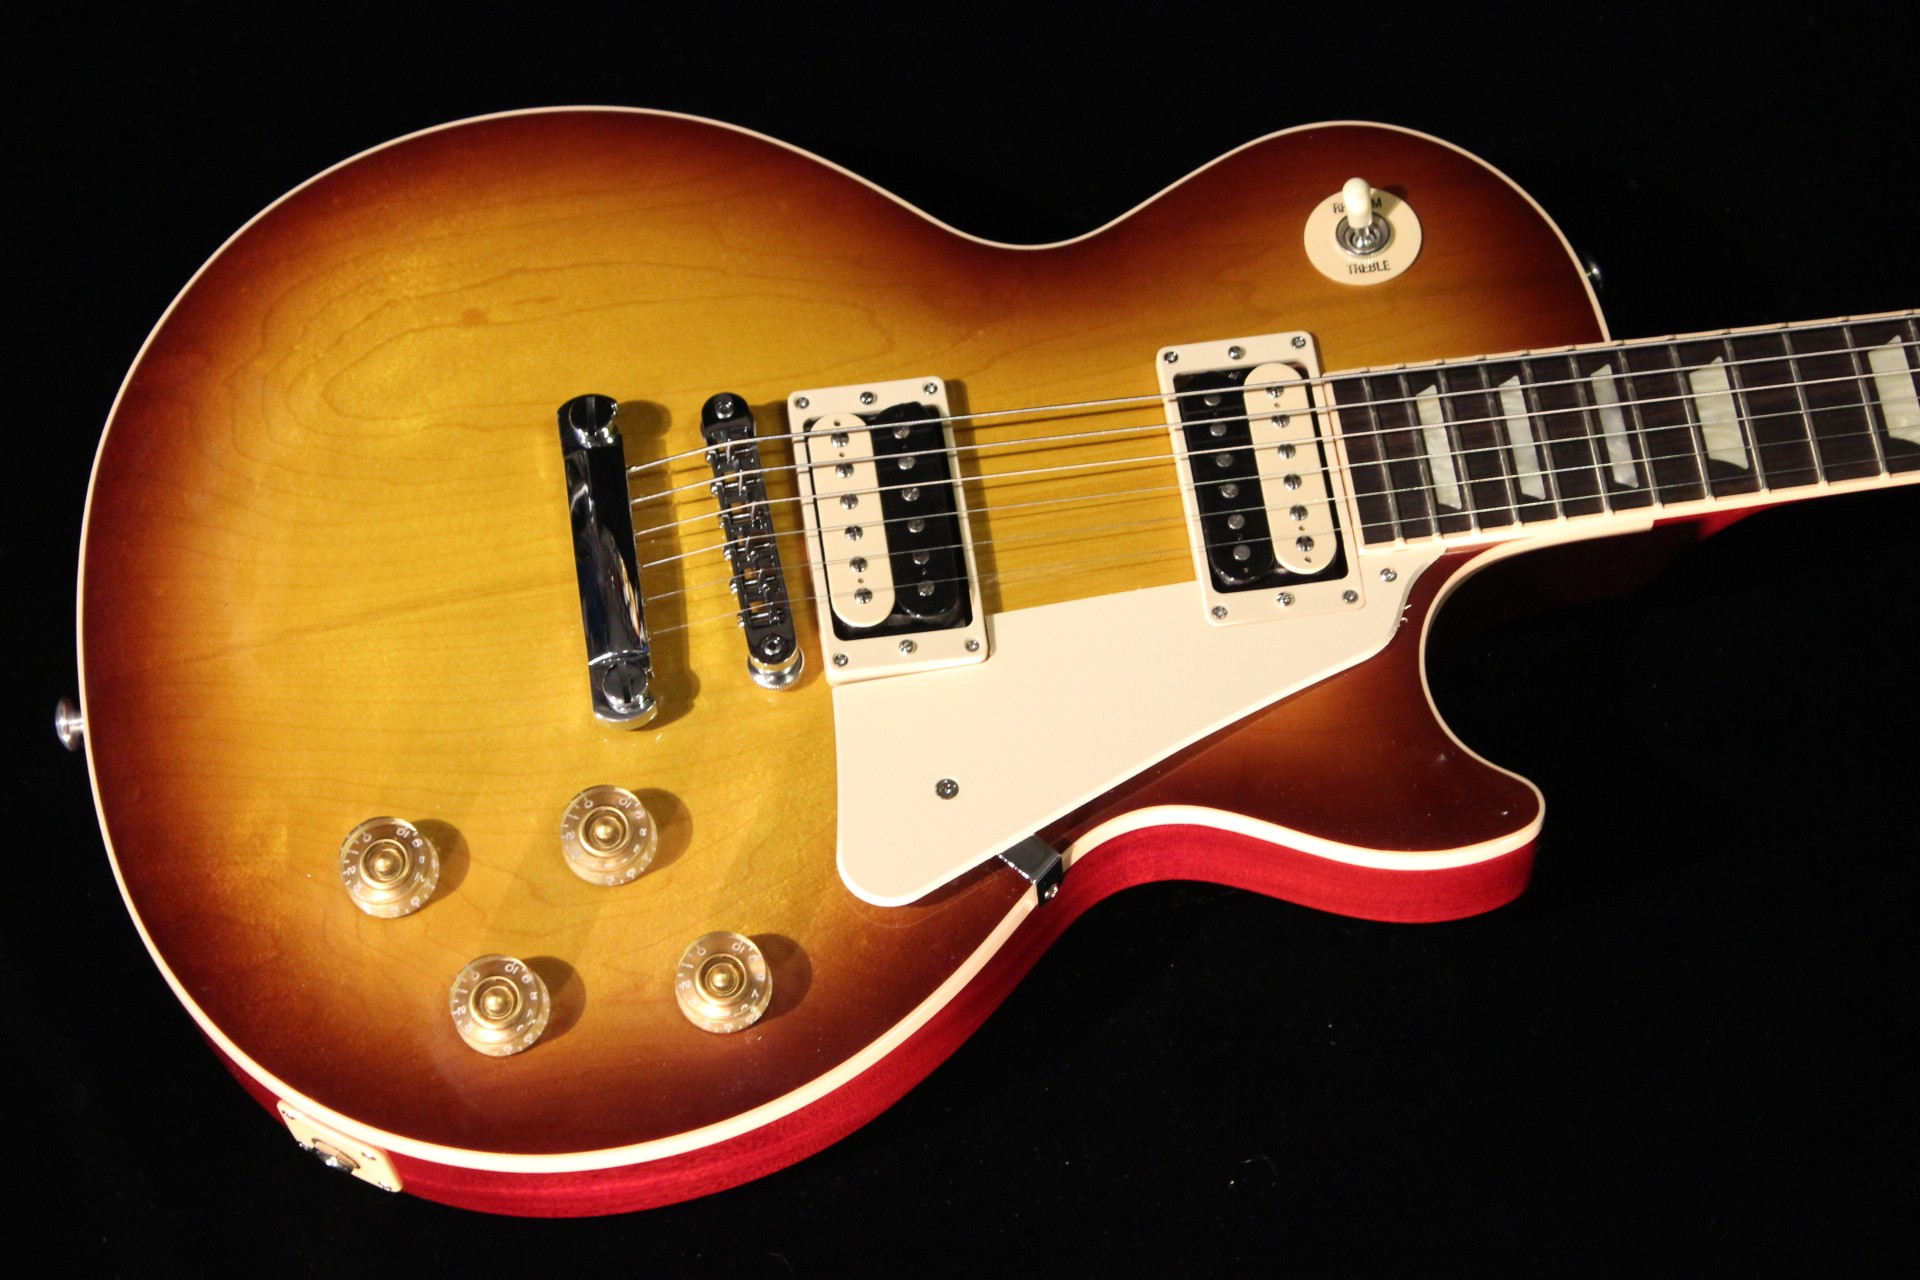 les paul Find an unbeatable selection of gibson electric guitars including gibson custom shop les paul guitars at willcutt guitars.